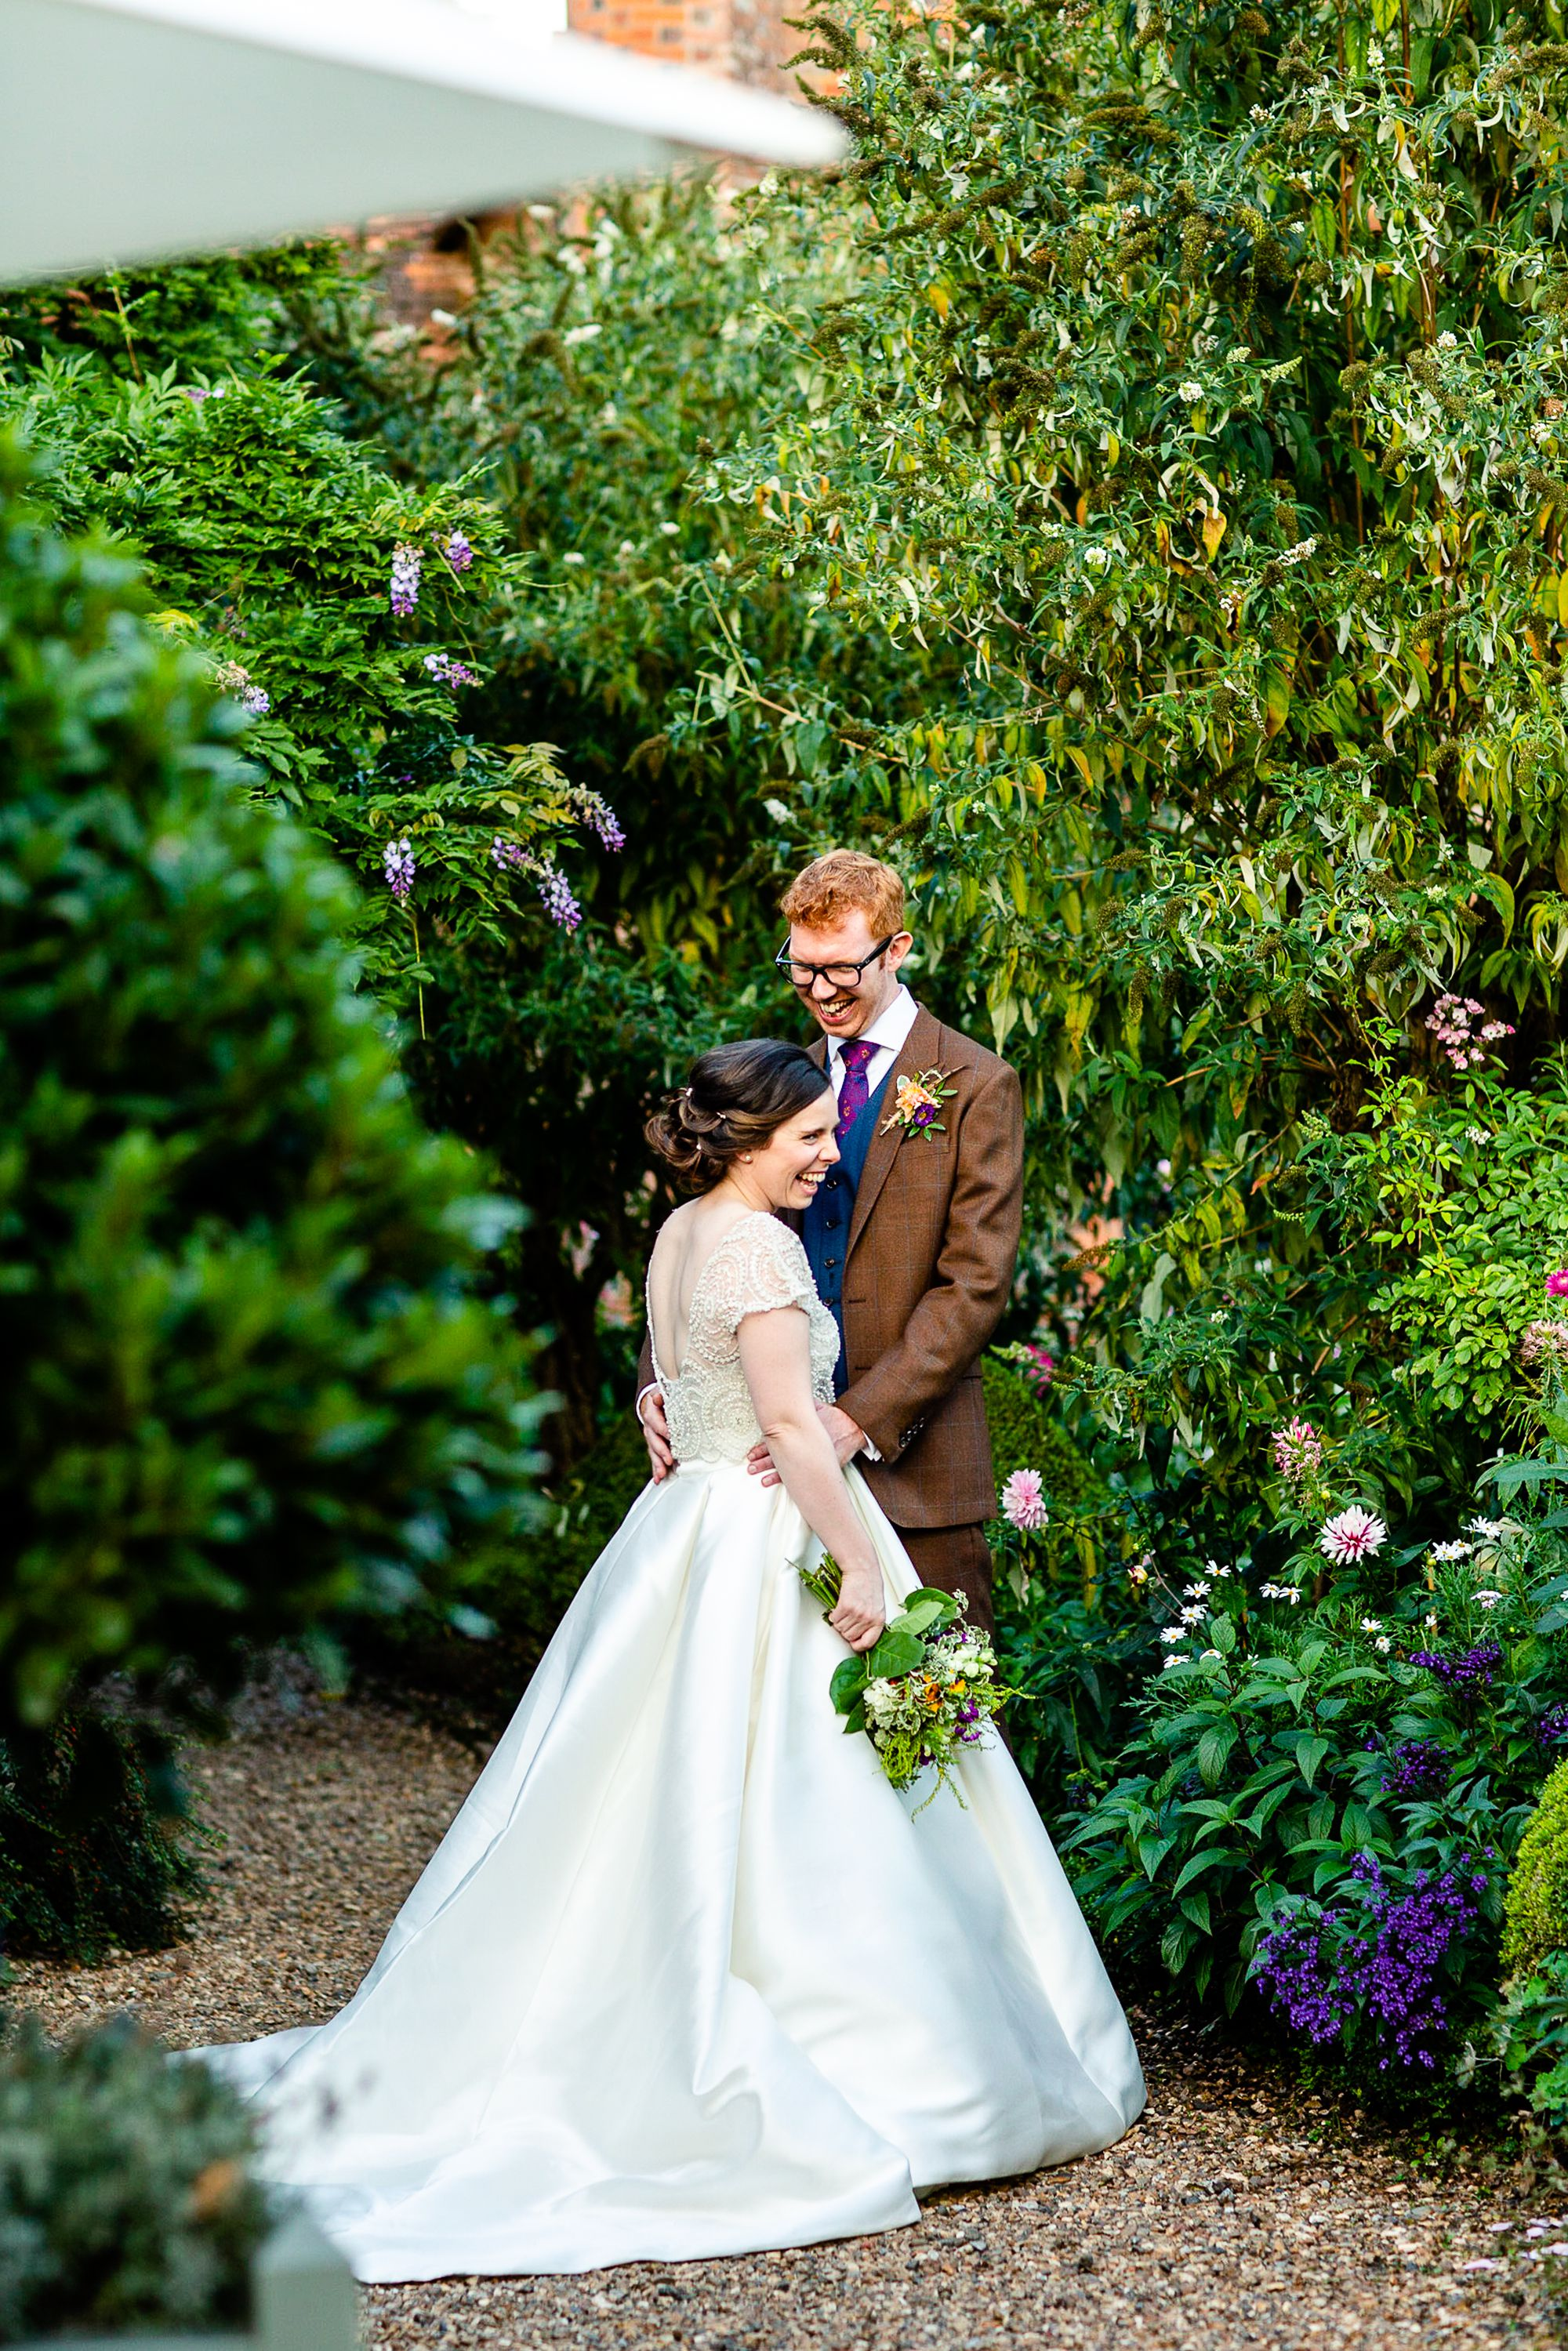 Chenies Manor House Wedding Photographer_0142.jpg